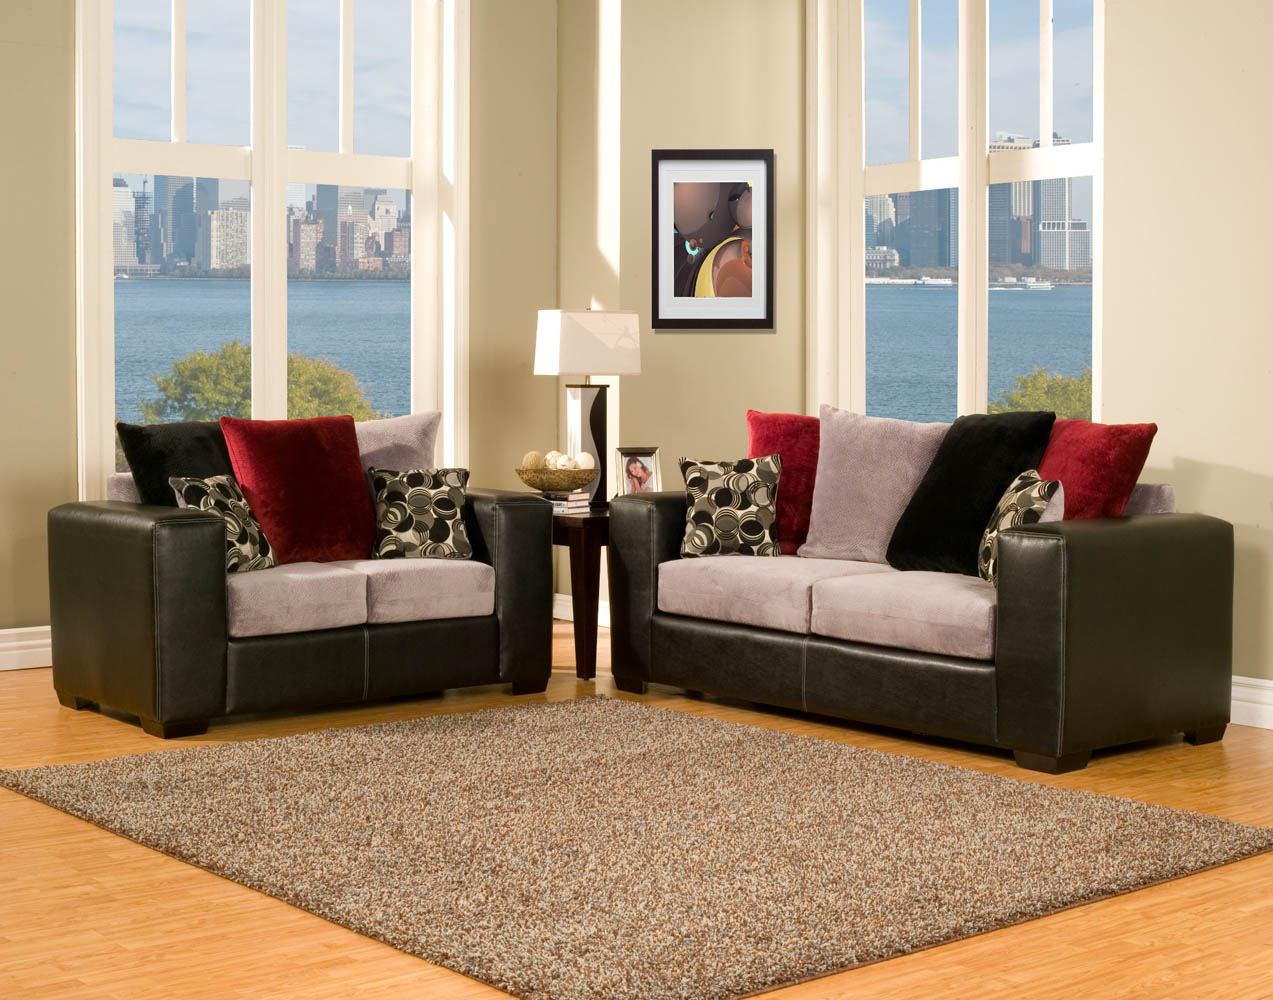 2 piece black grey and red modern sofa set for Black couch set